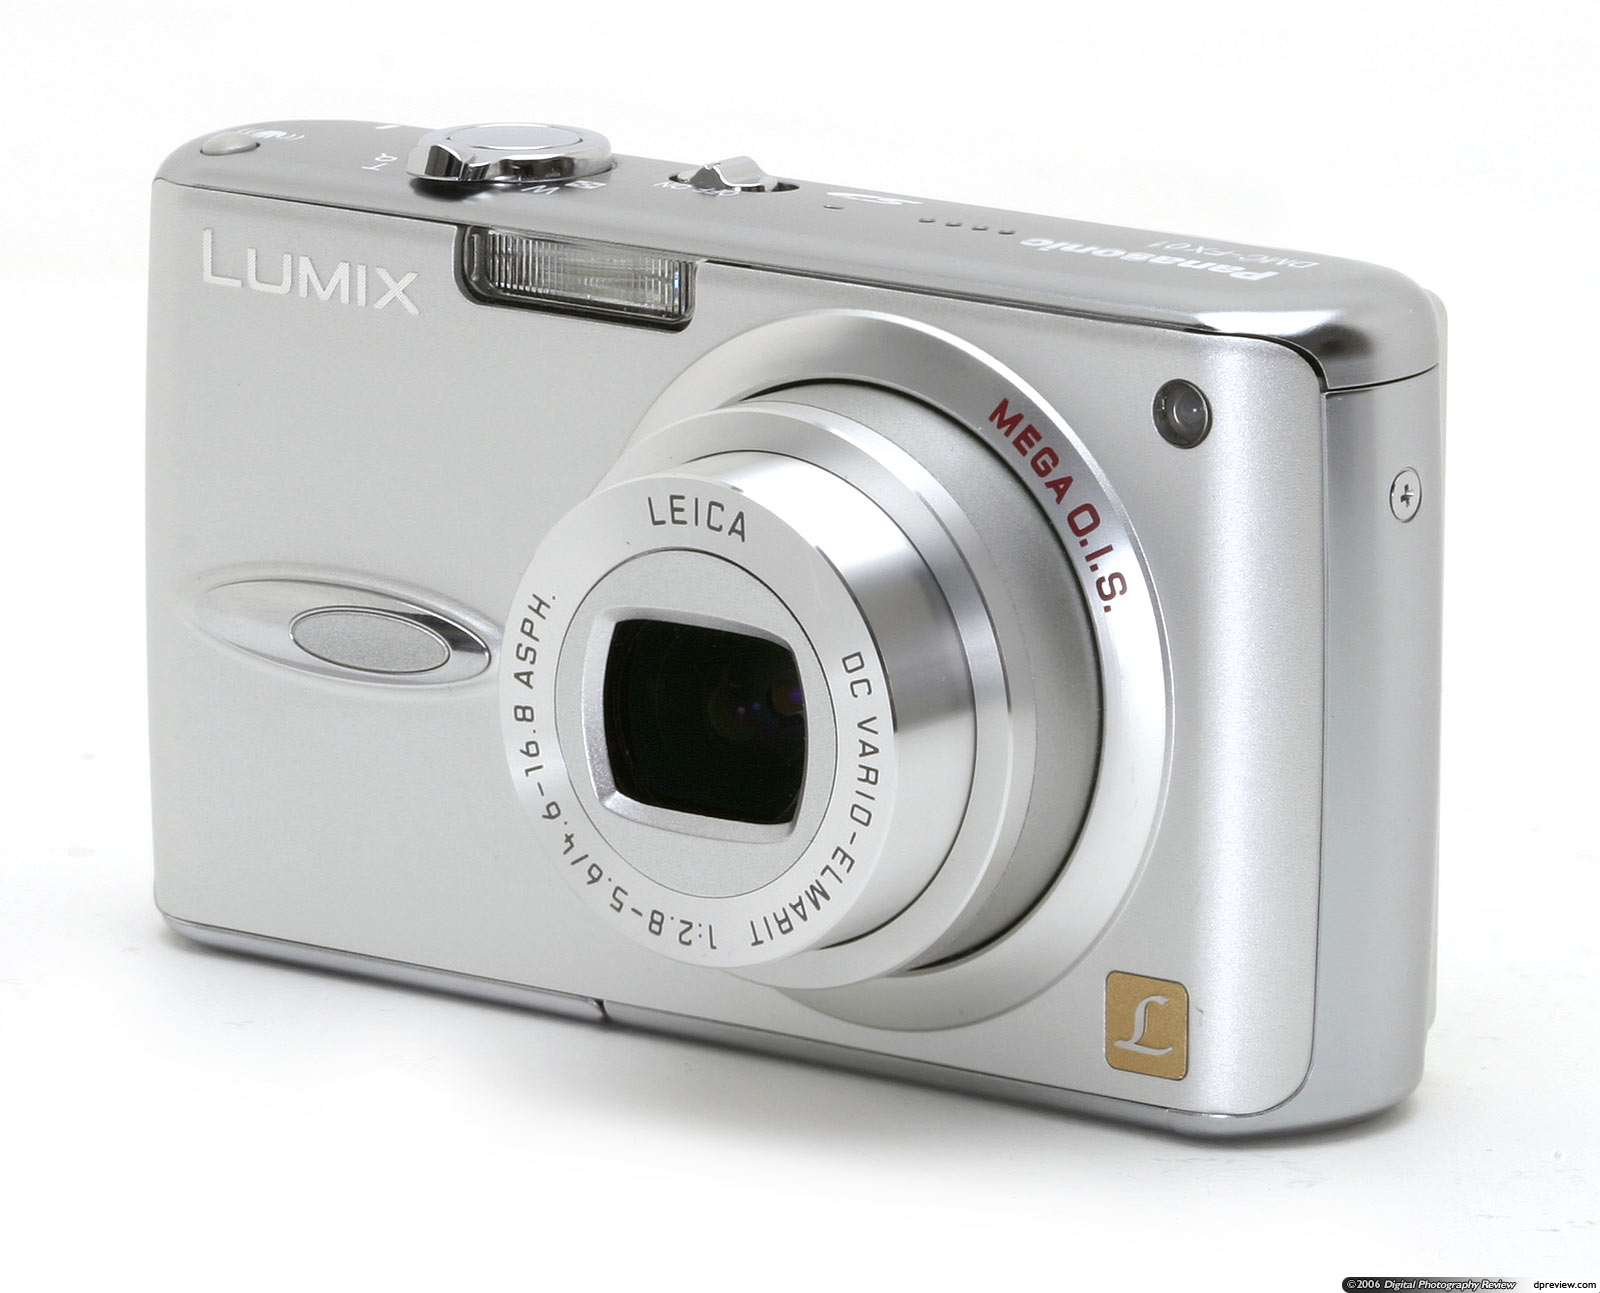 panasonic lumix dmc fx01 review digital photography review rh dpreview com Panasonic Lumix DMC- TZ10 Newest Panasonic Lumix Camera